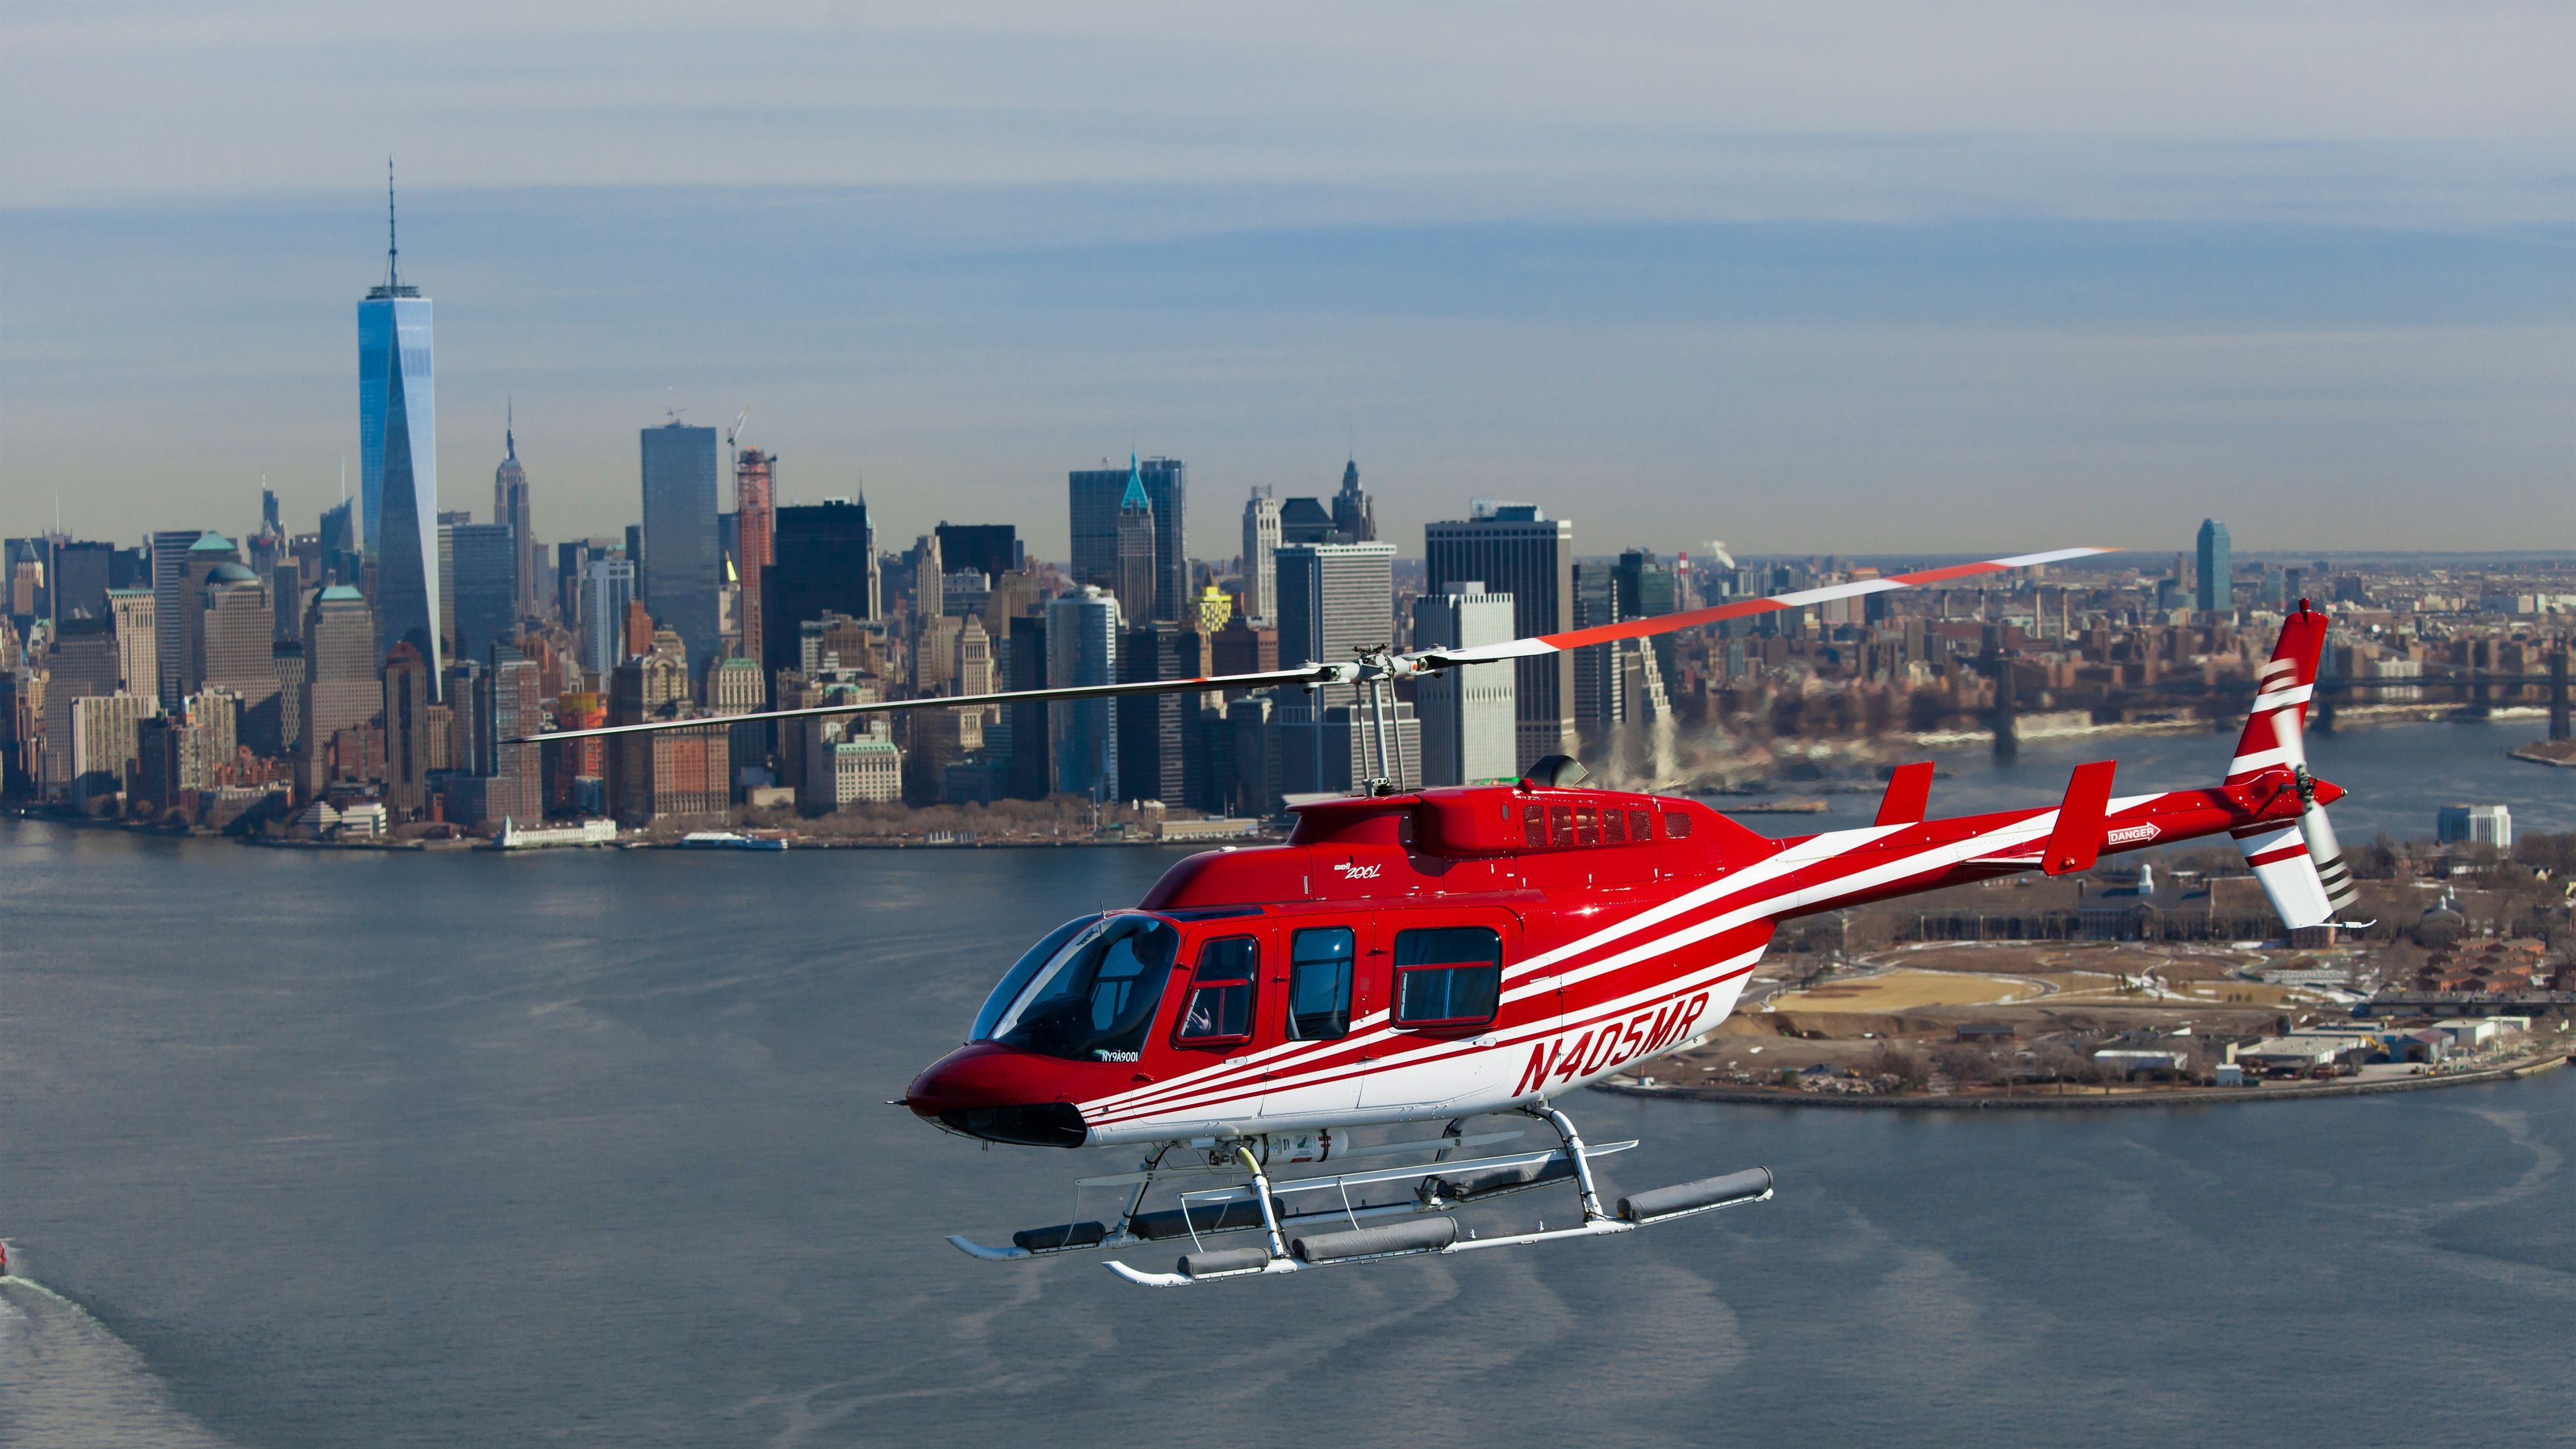 Helicopter with Manhattan in the background